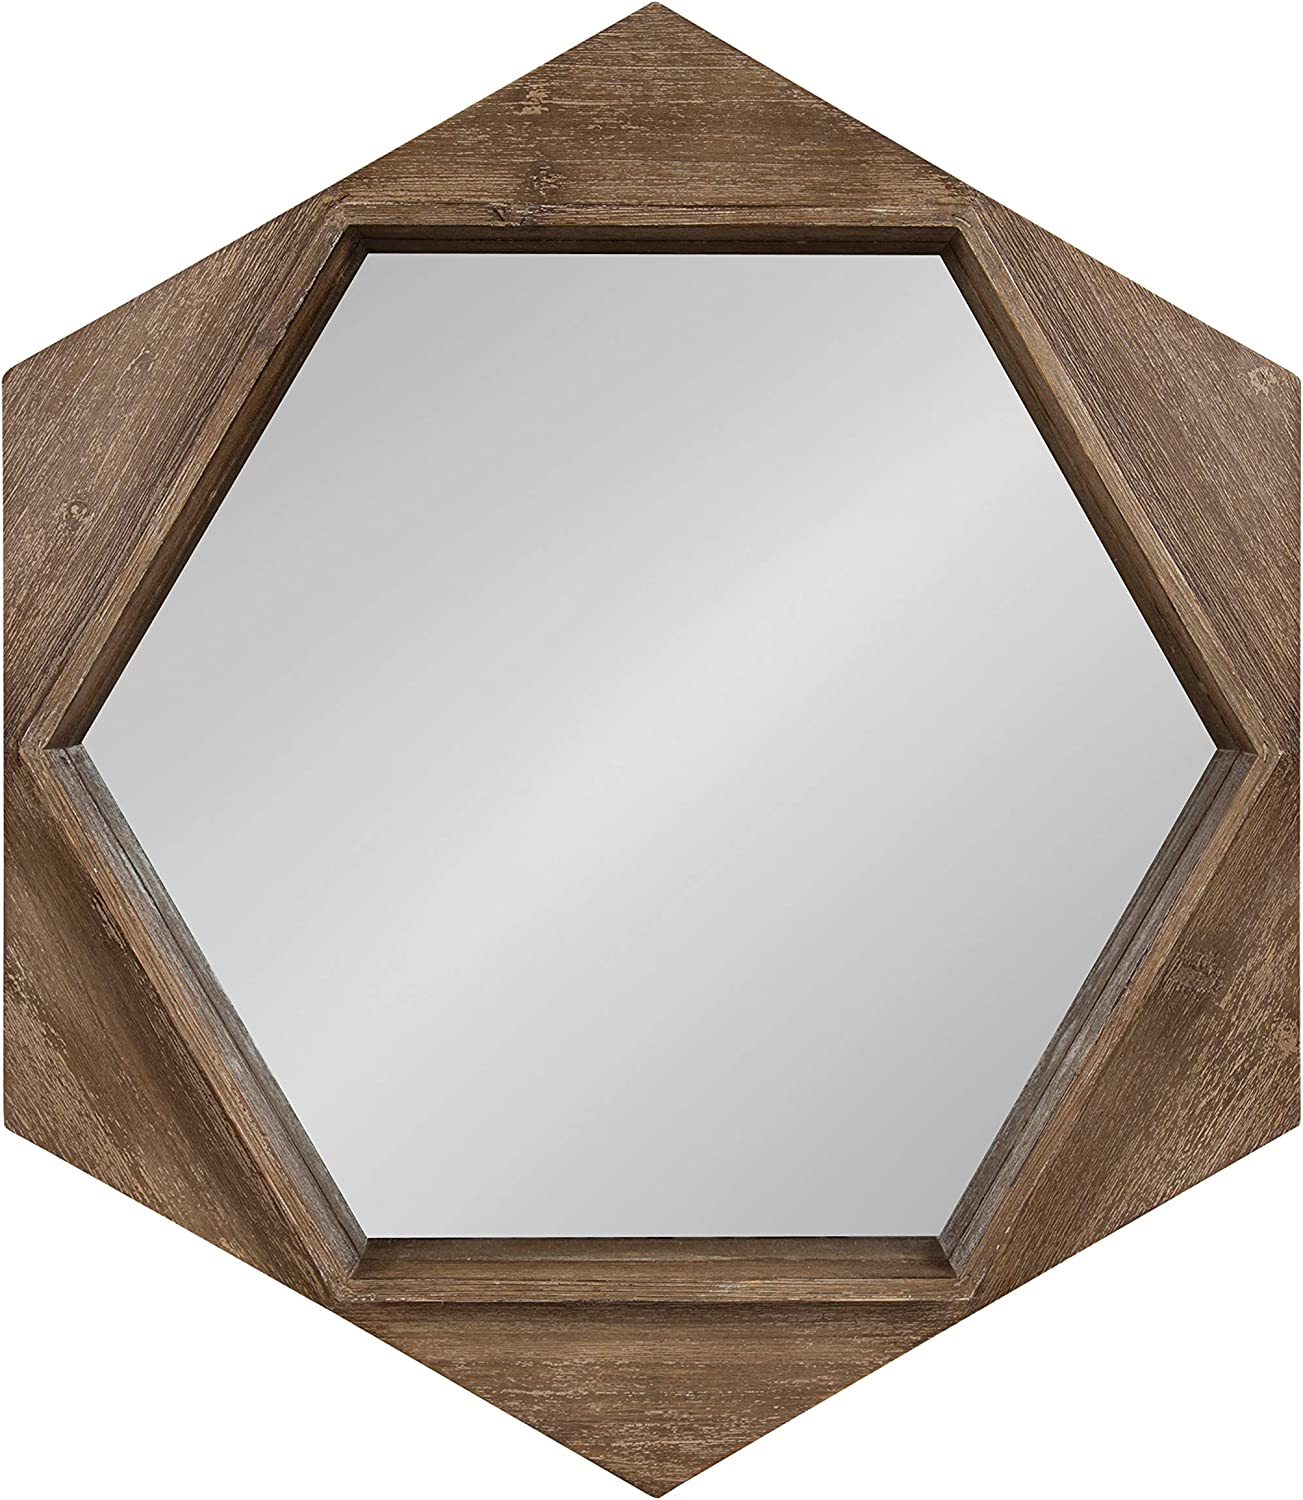 Kate And Laurel Yandel Contemporary Rustic Hexagon Wooden Wall Mirror Distressed Light Brown Kitchen Dining